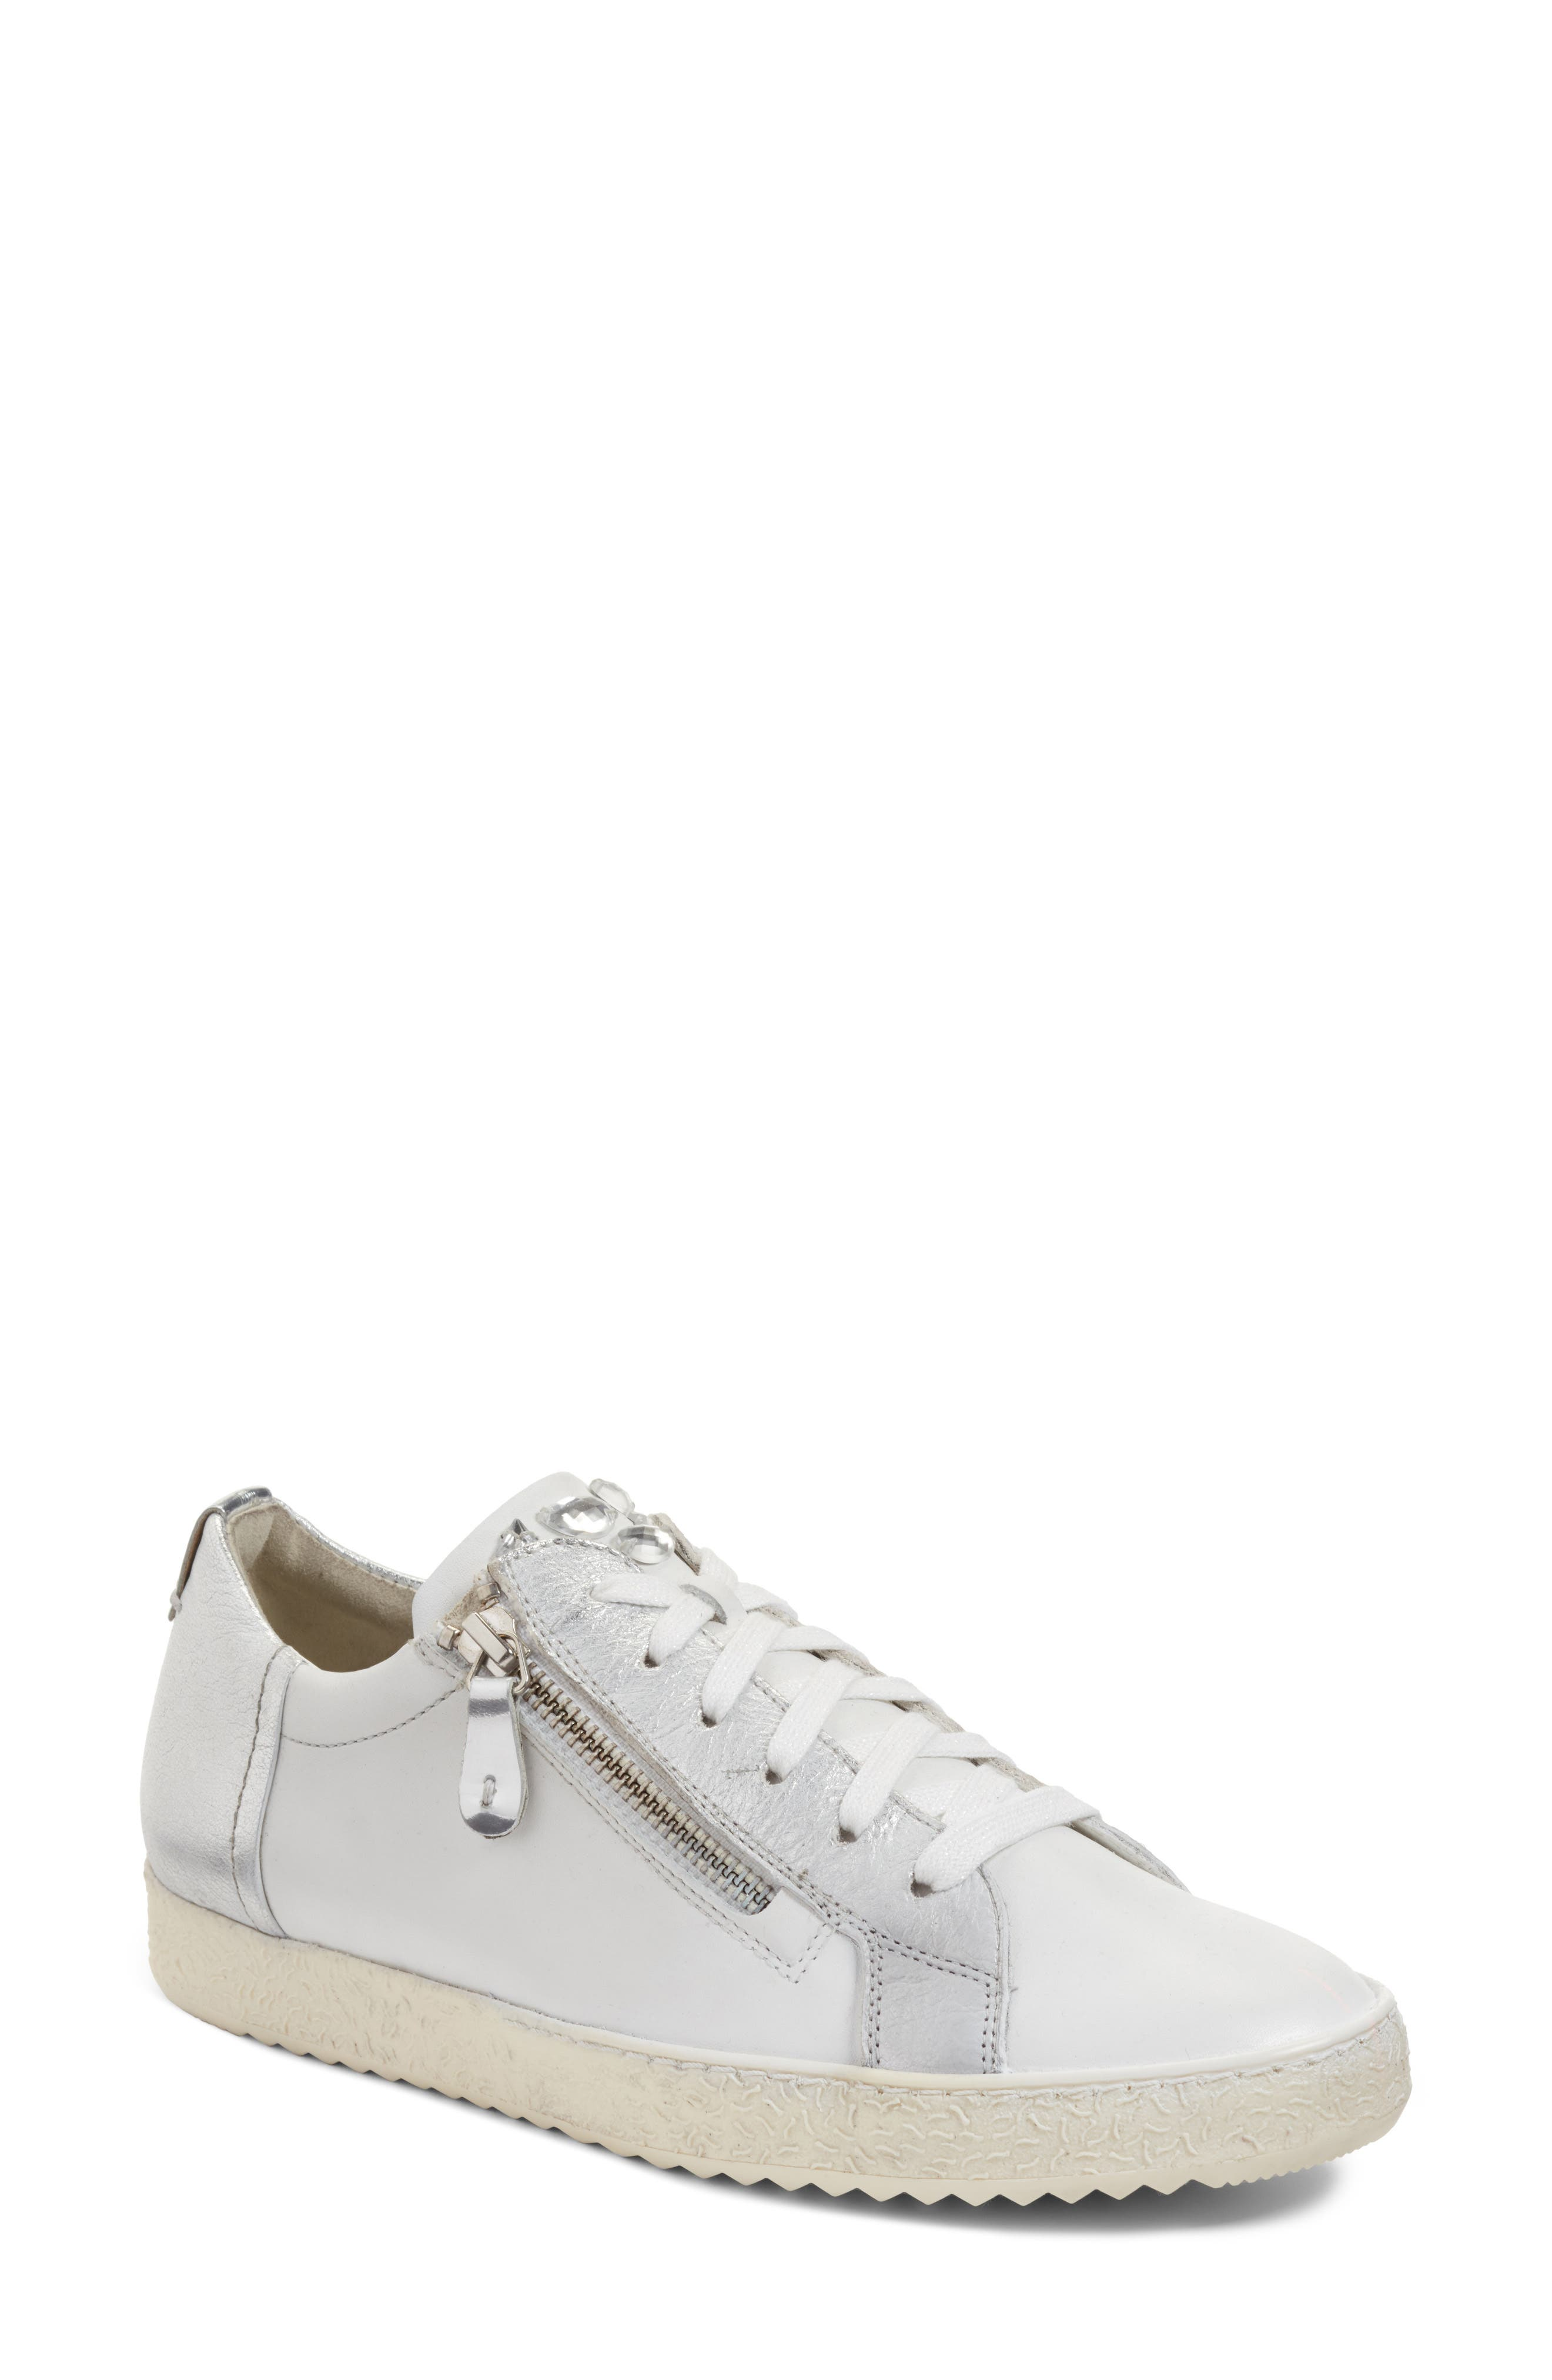 Minnie Sneaker,                         Main,                         color, White/ Silver Leather